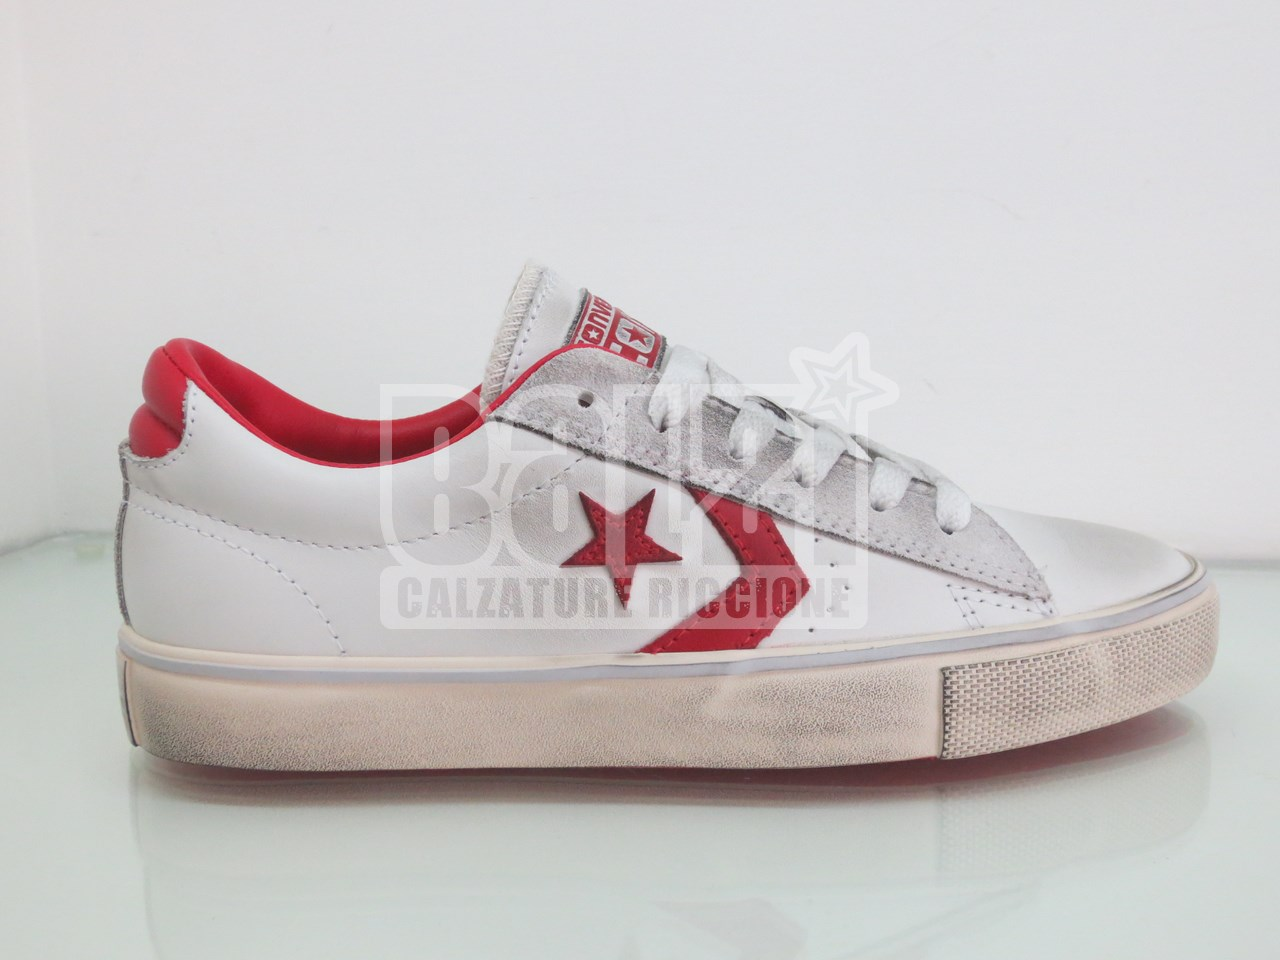 Converse Pro Leather Vulc Ox Basse Pelle Bianco Rosso